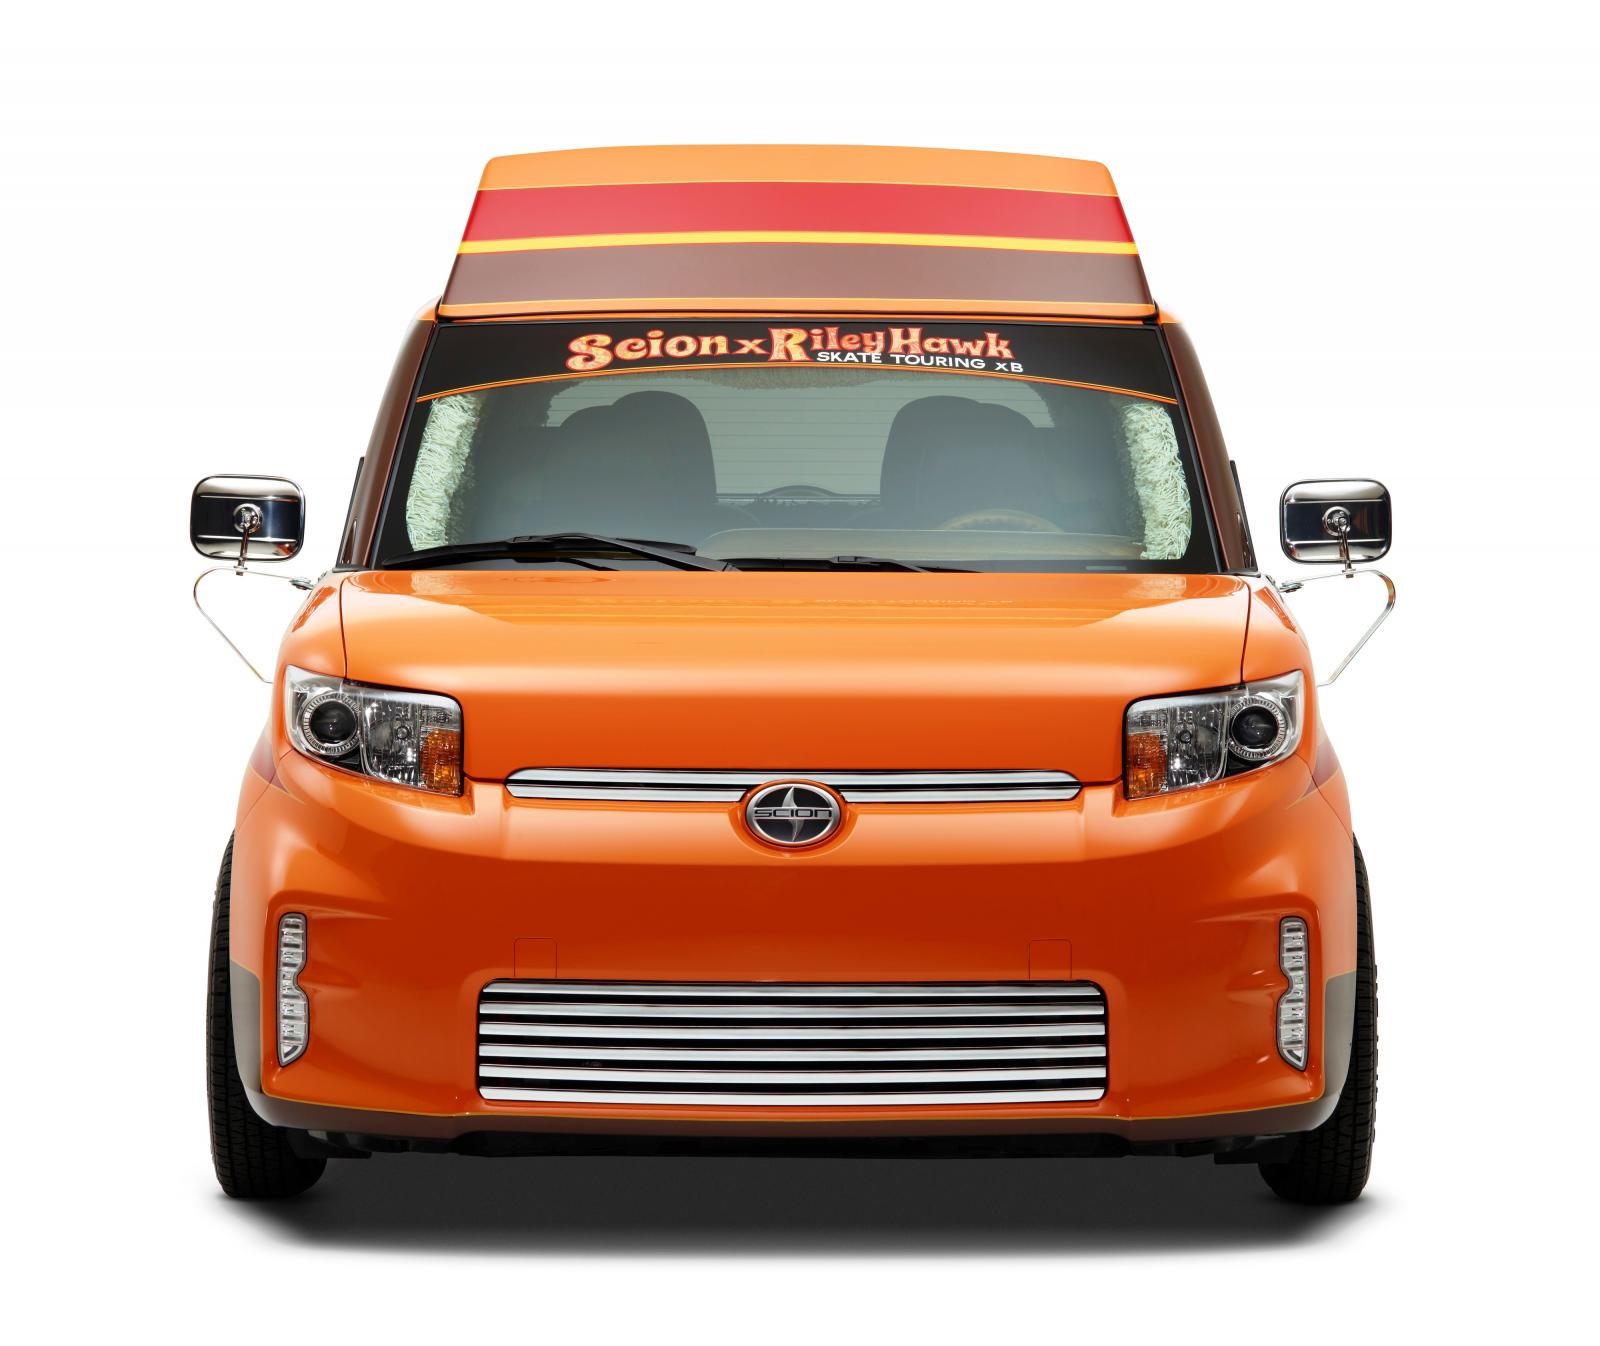 2014SEMA_Scion_x_Riley_Hawk_Skate_Tour_xB_002